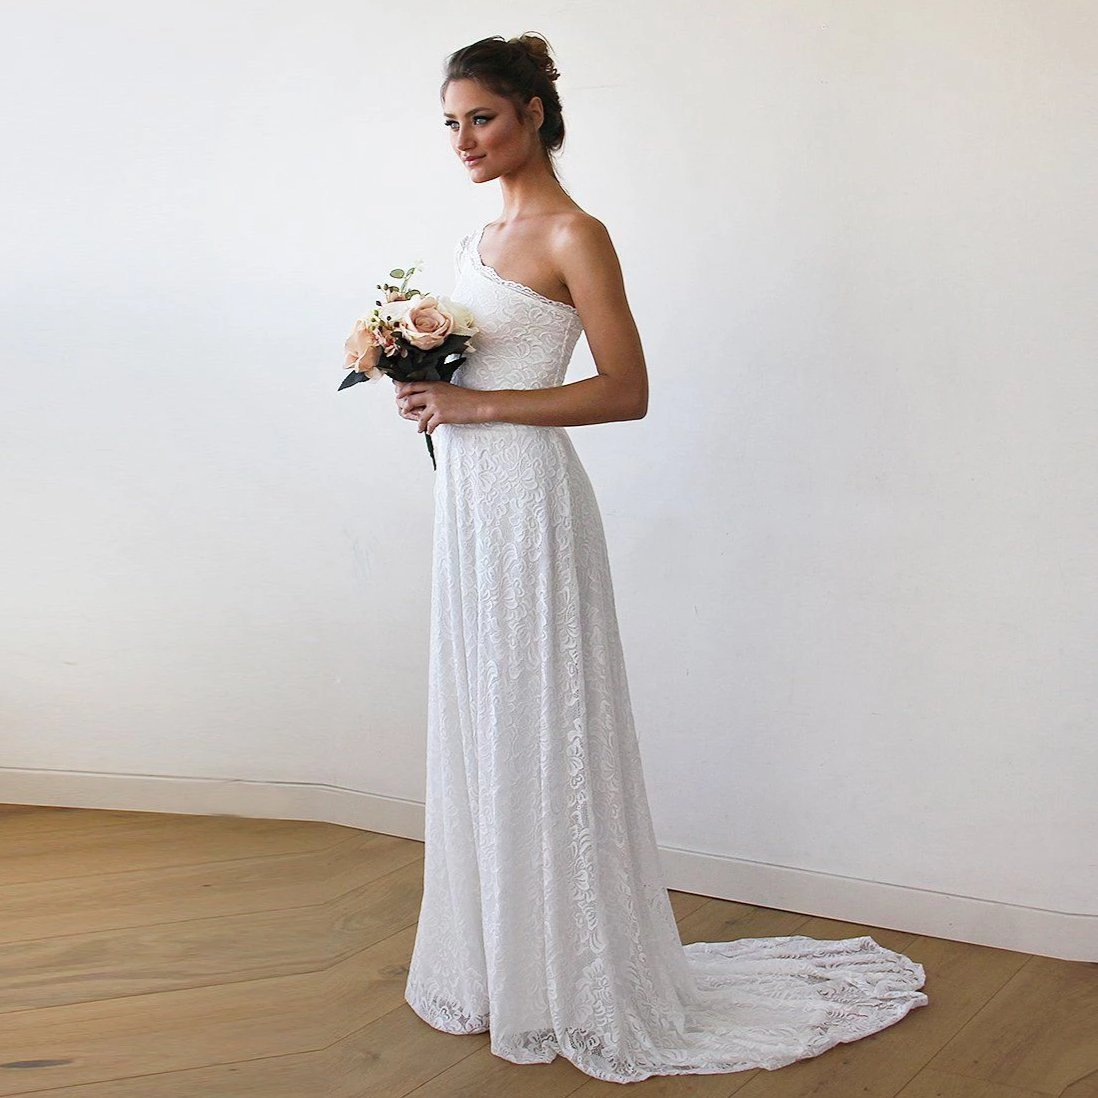 One Shoulder Floral Lace Gown With Long Train 1166 - Blushfashion